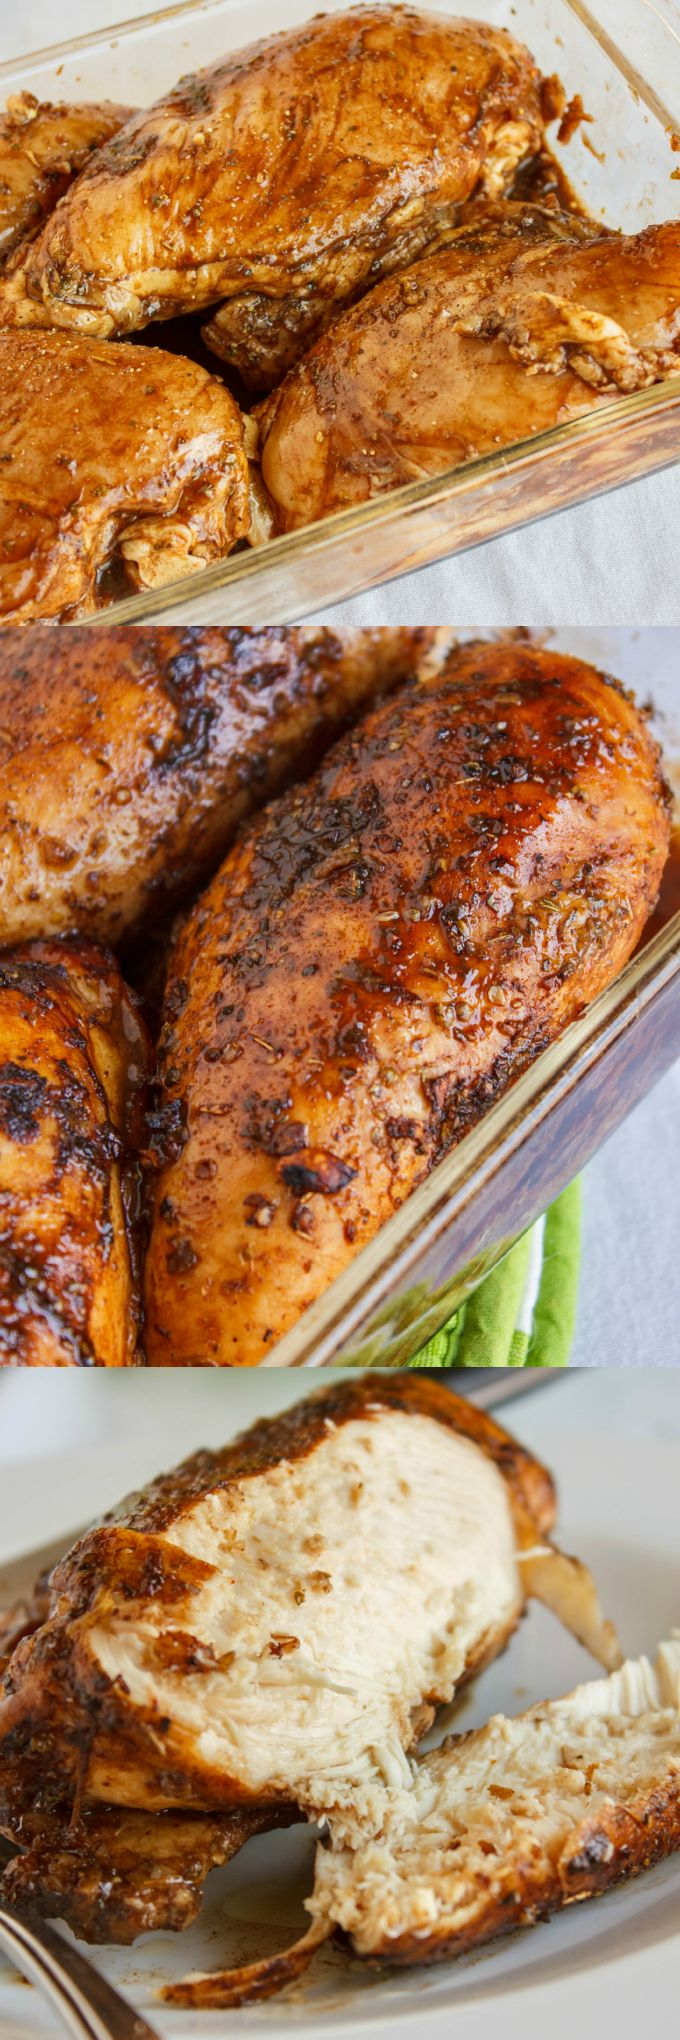 Balsamic Chicken Breasts (bone-in chicken breasts)